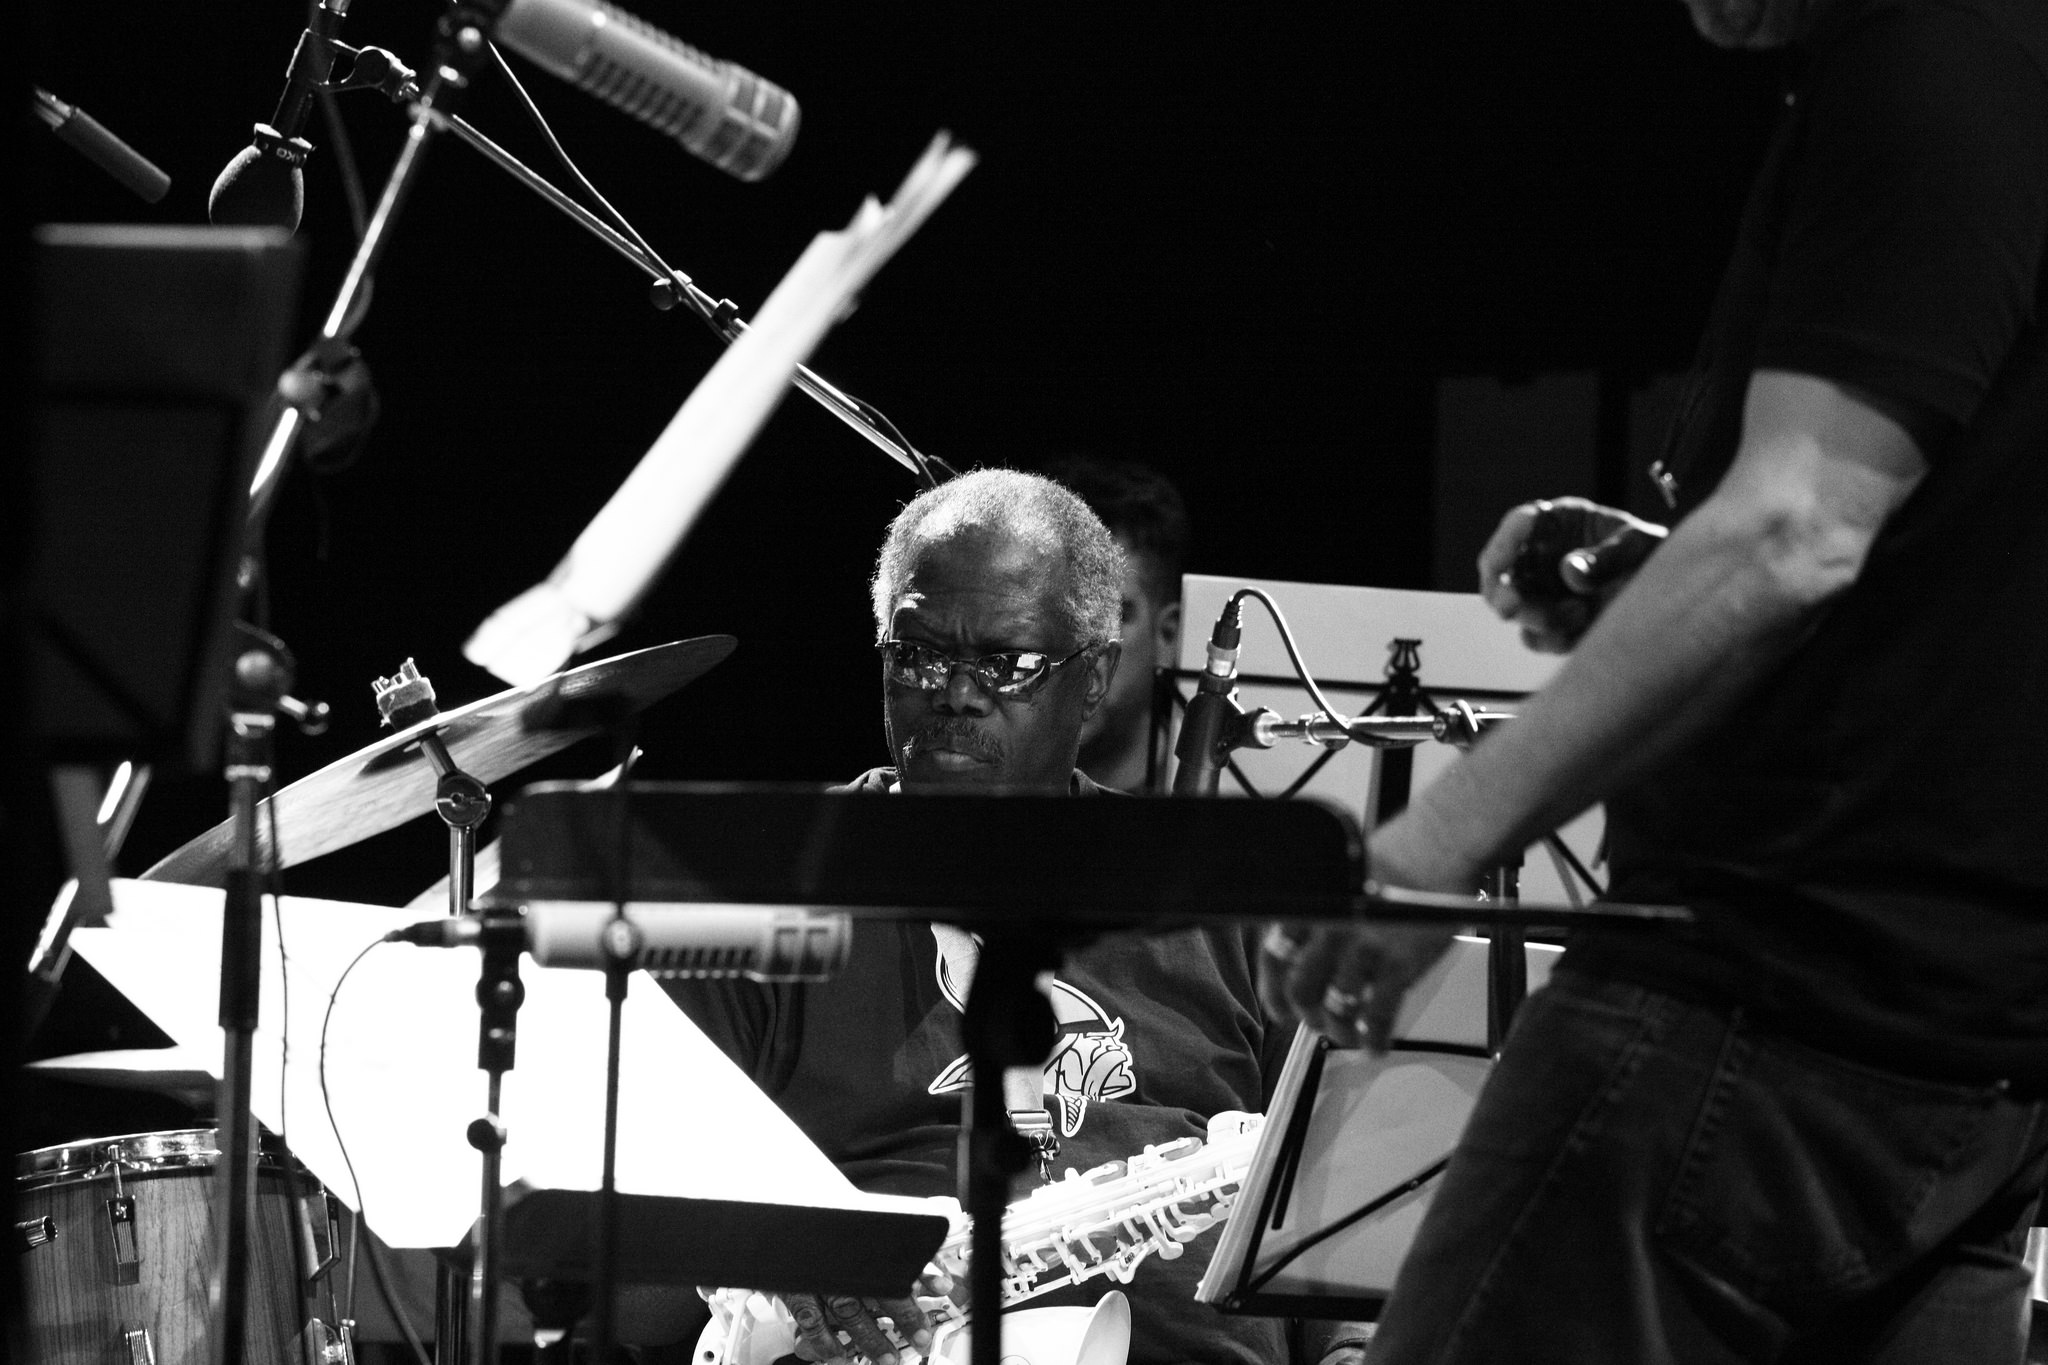 Joe McPhee @ Unlimited 30